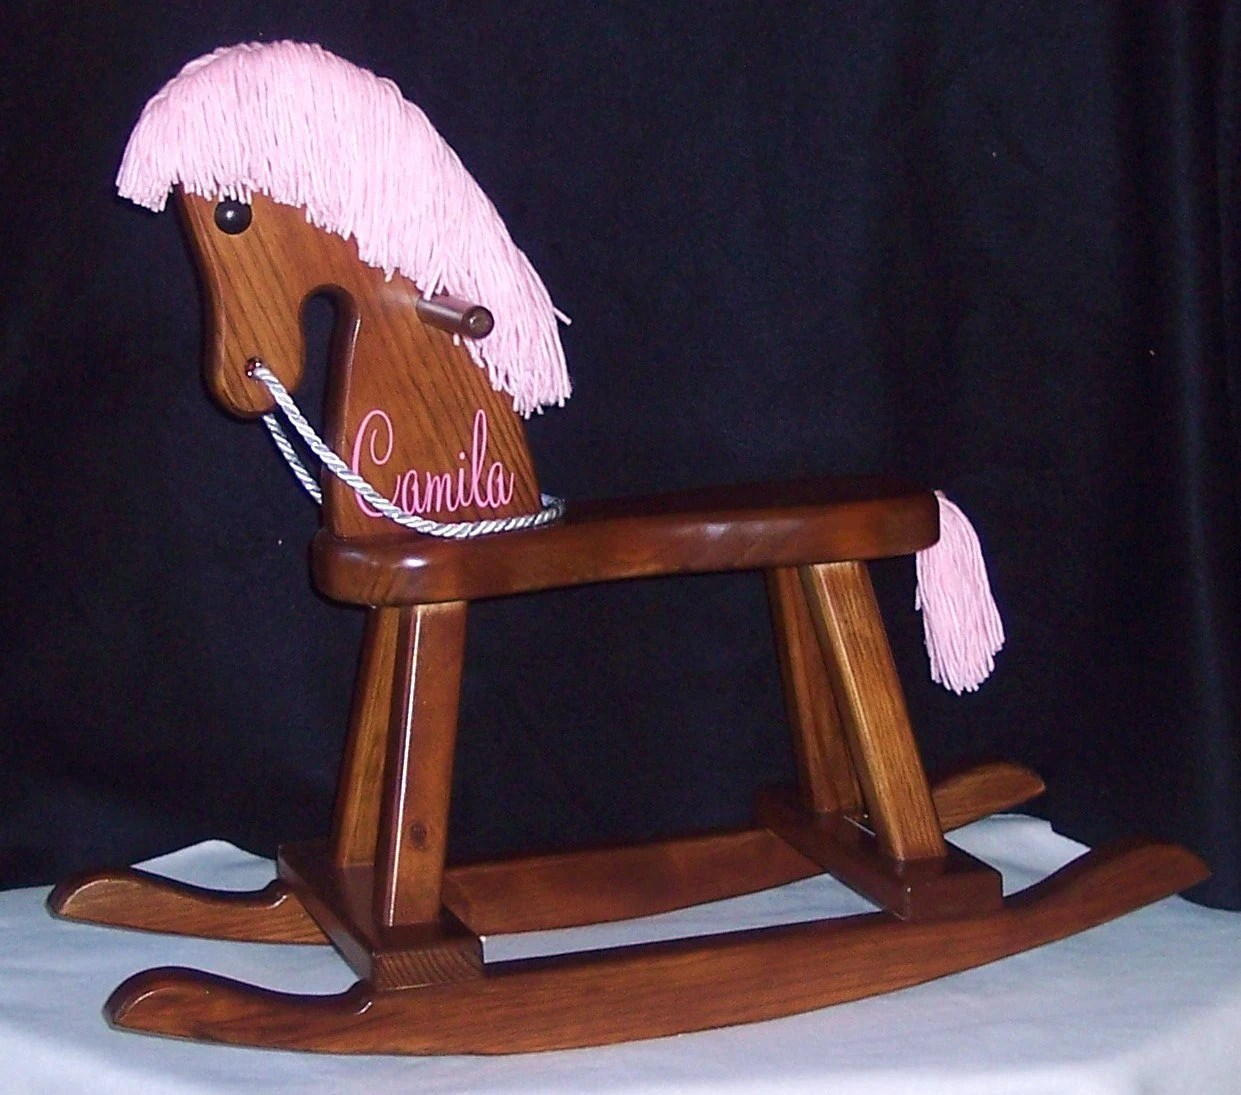 personalized rocking chair for toddlers light blue dining chairs uk toddler horse pink mane